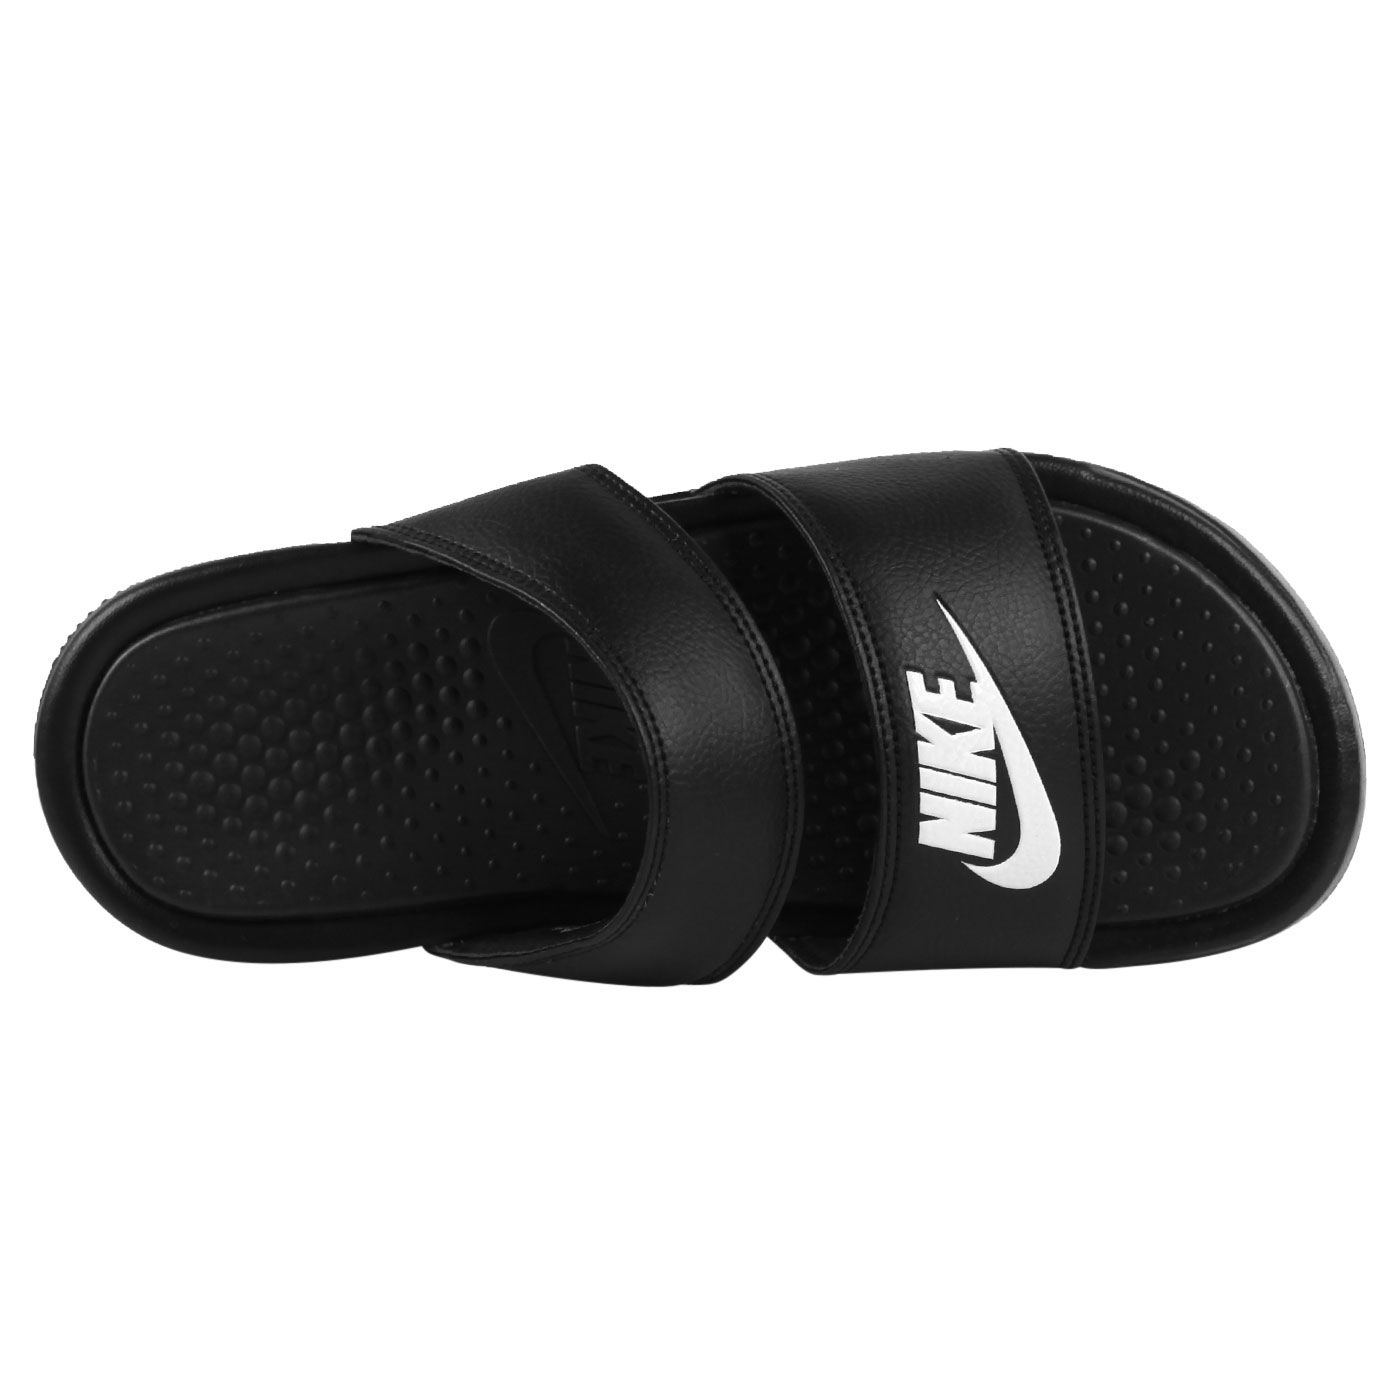 NIKE 女涼拖鞋  @WMNS BENASSI DUO ULTRA SLIDE@819717010 - 黑白